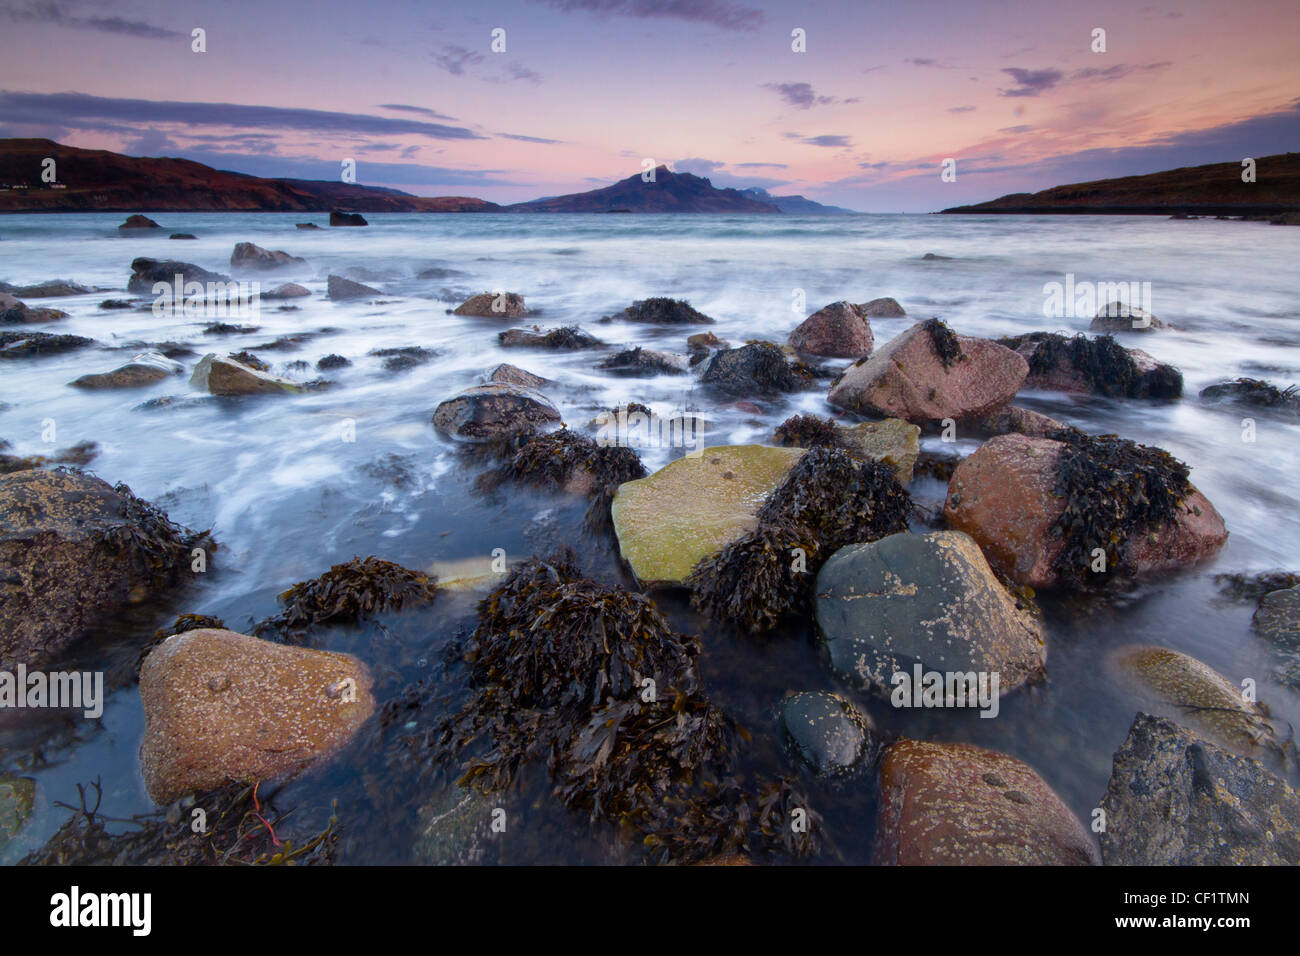 The sea lapping around rocks on the shore at Balmeanach a quiet crofting township near Dunvegan on the Isle of Skye. - Stock Image